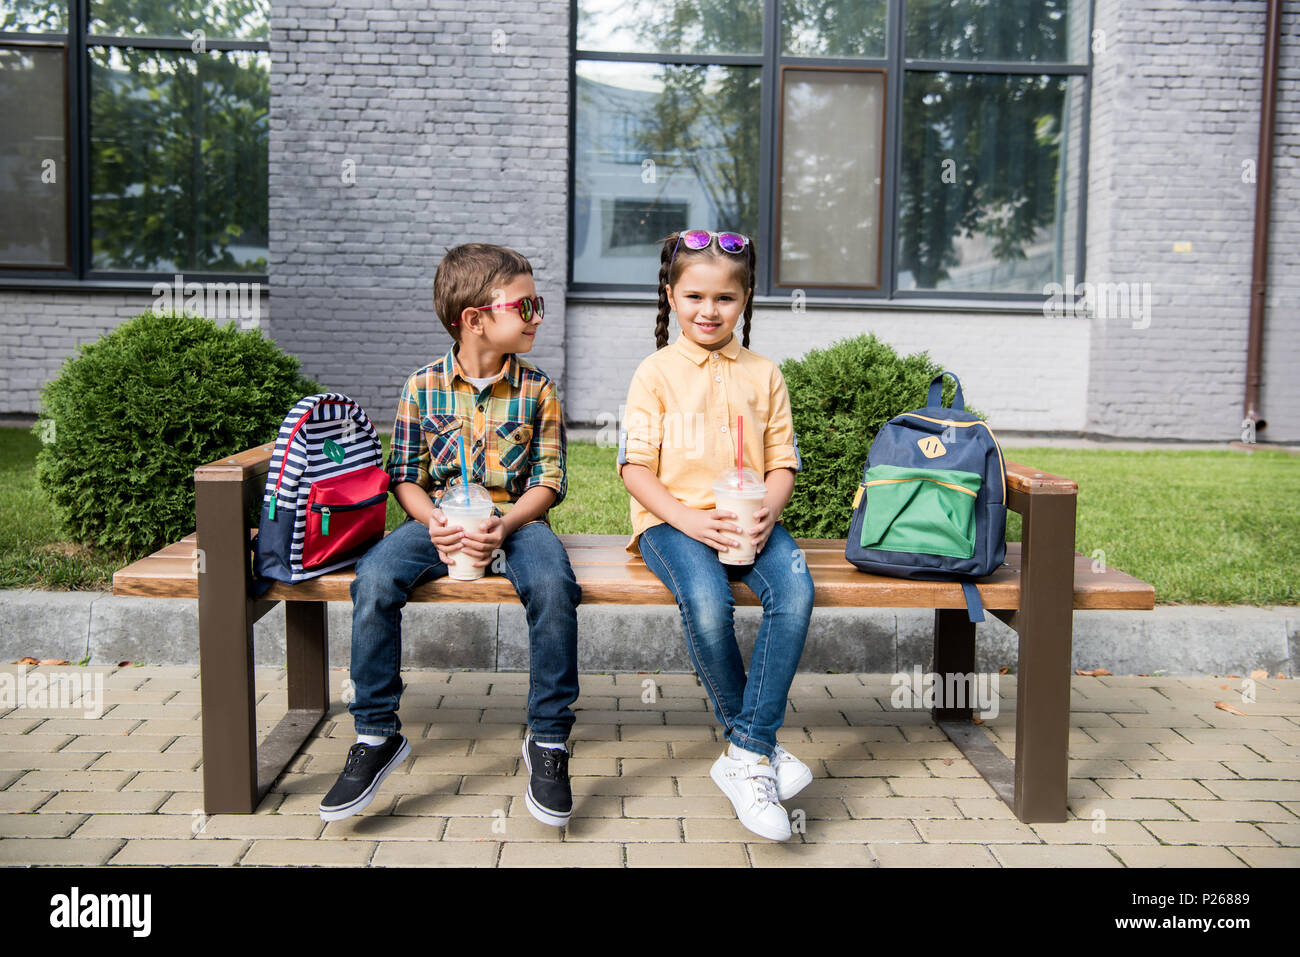 children with milkshakes sitting on bench with backpacks - Stock Image 321c96d188d6c